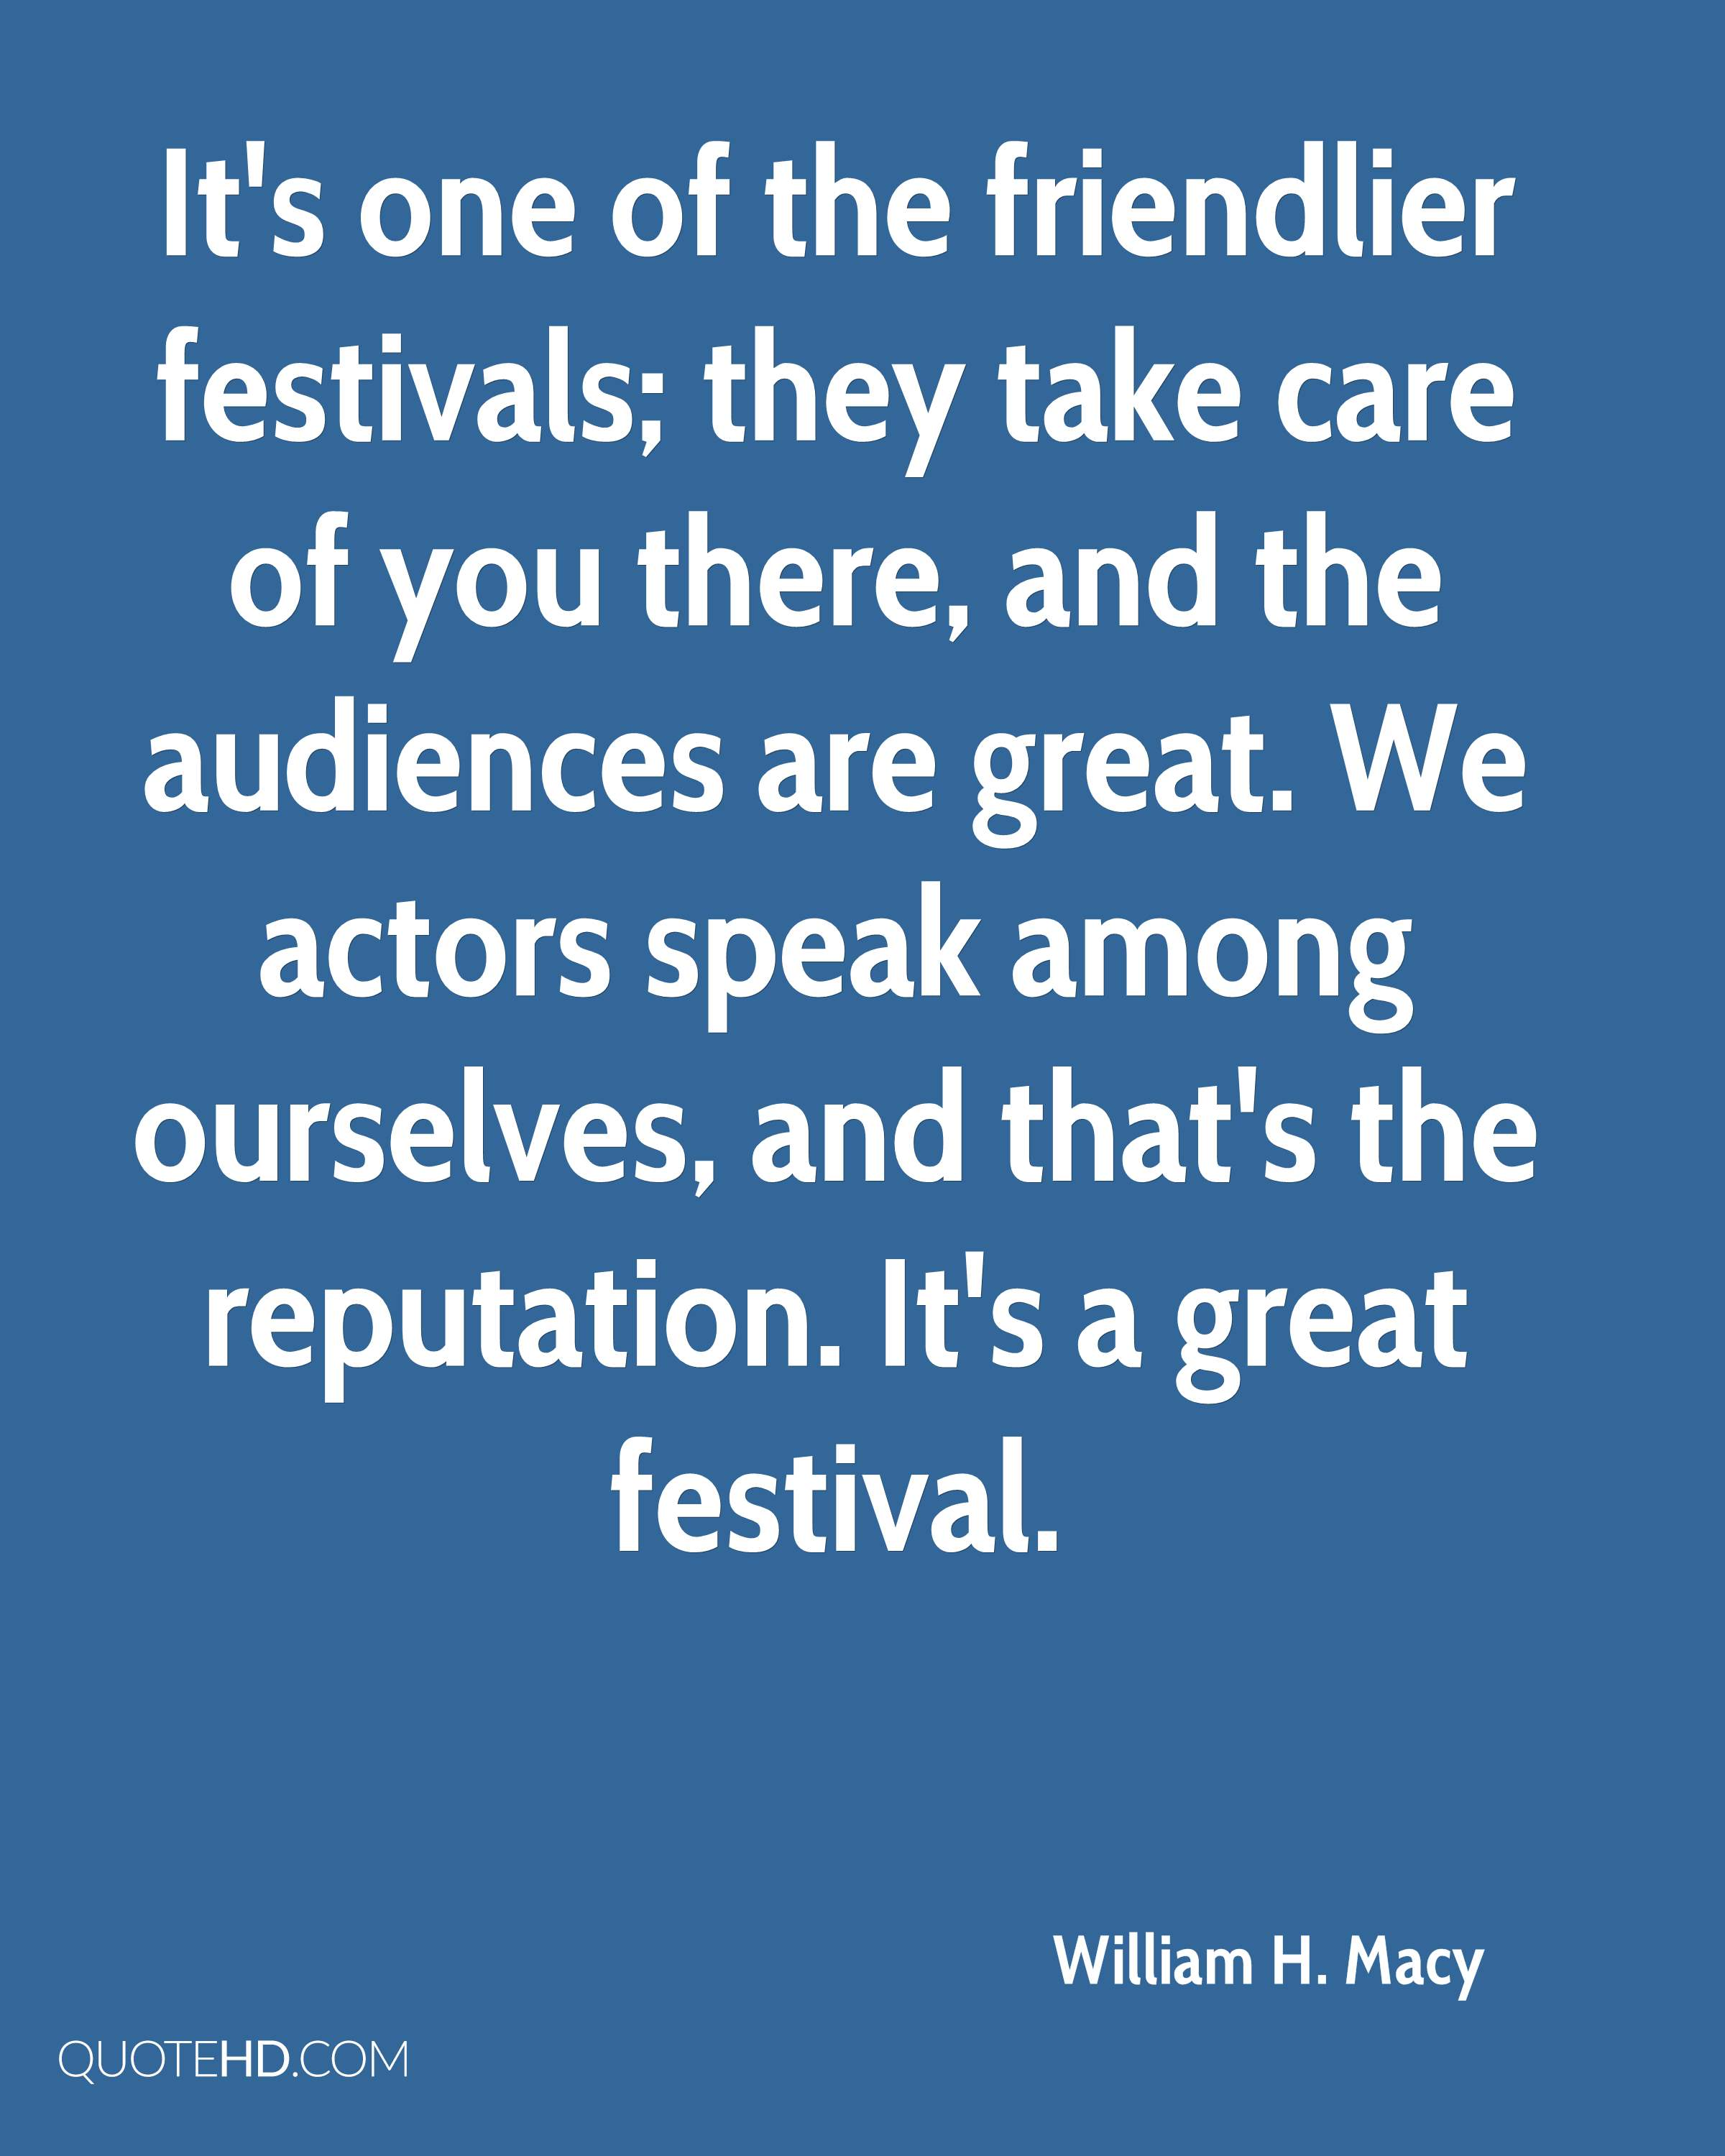 It's one of the friendlier festivals; they take care of you there, and the audiences are great. We actors speak among ourselves, and that's the reputation. It's a great festival.